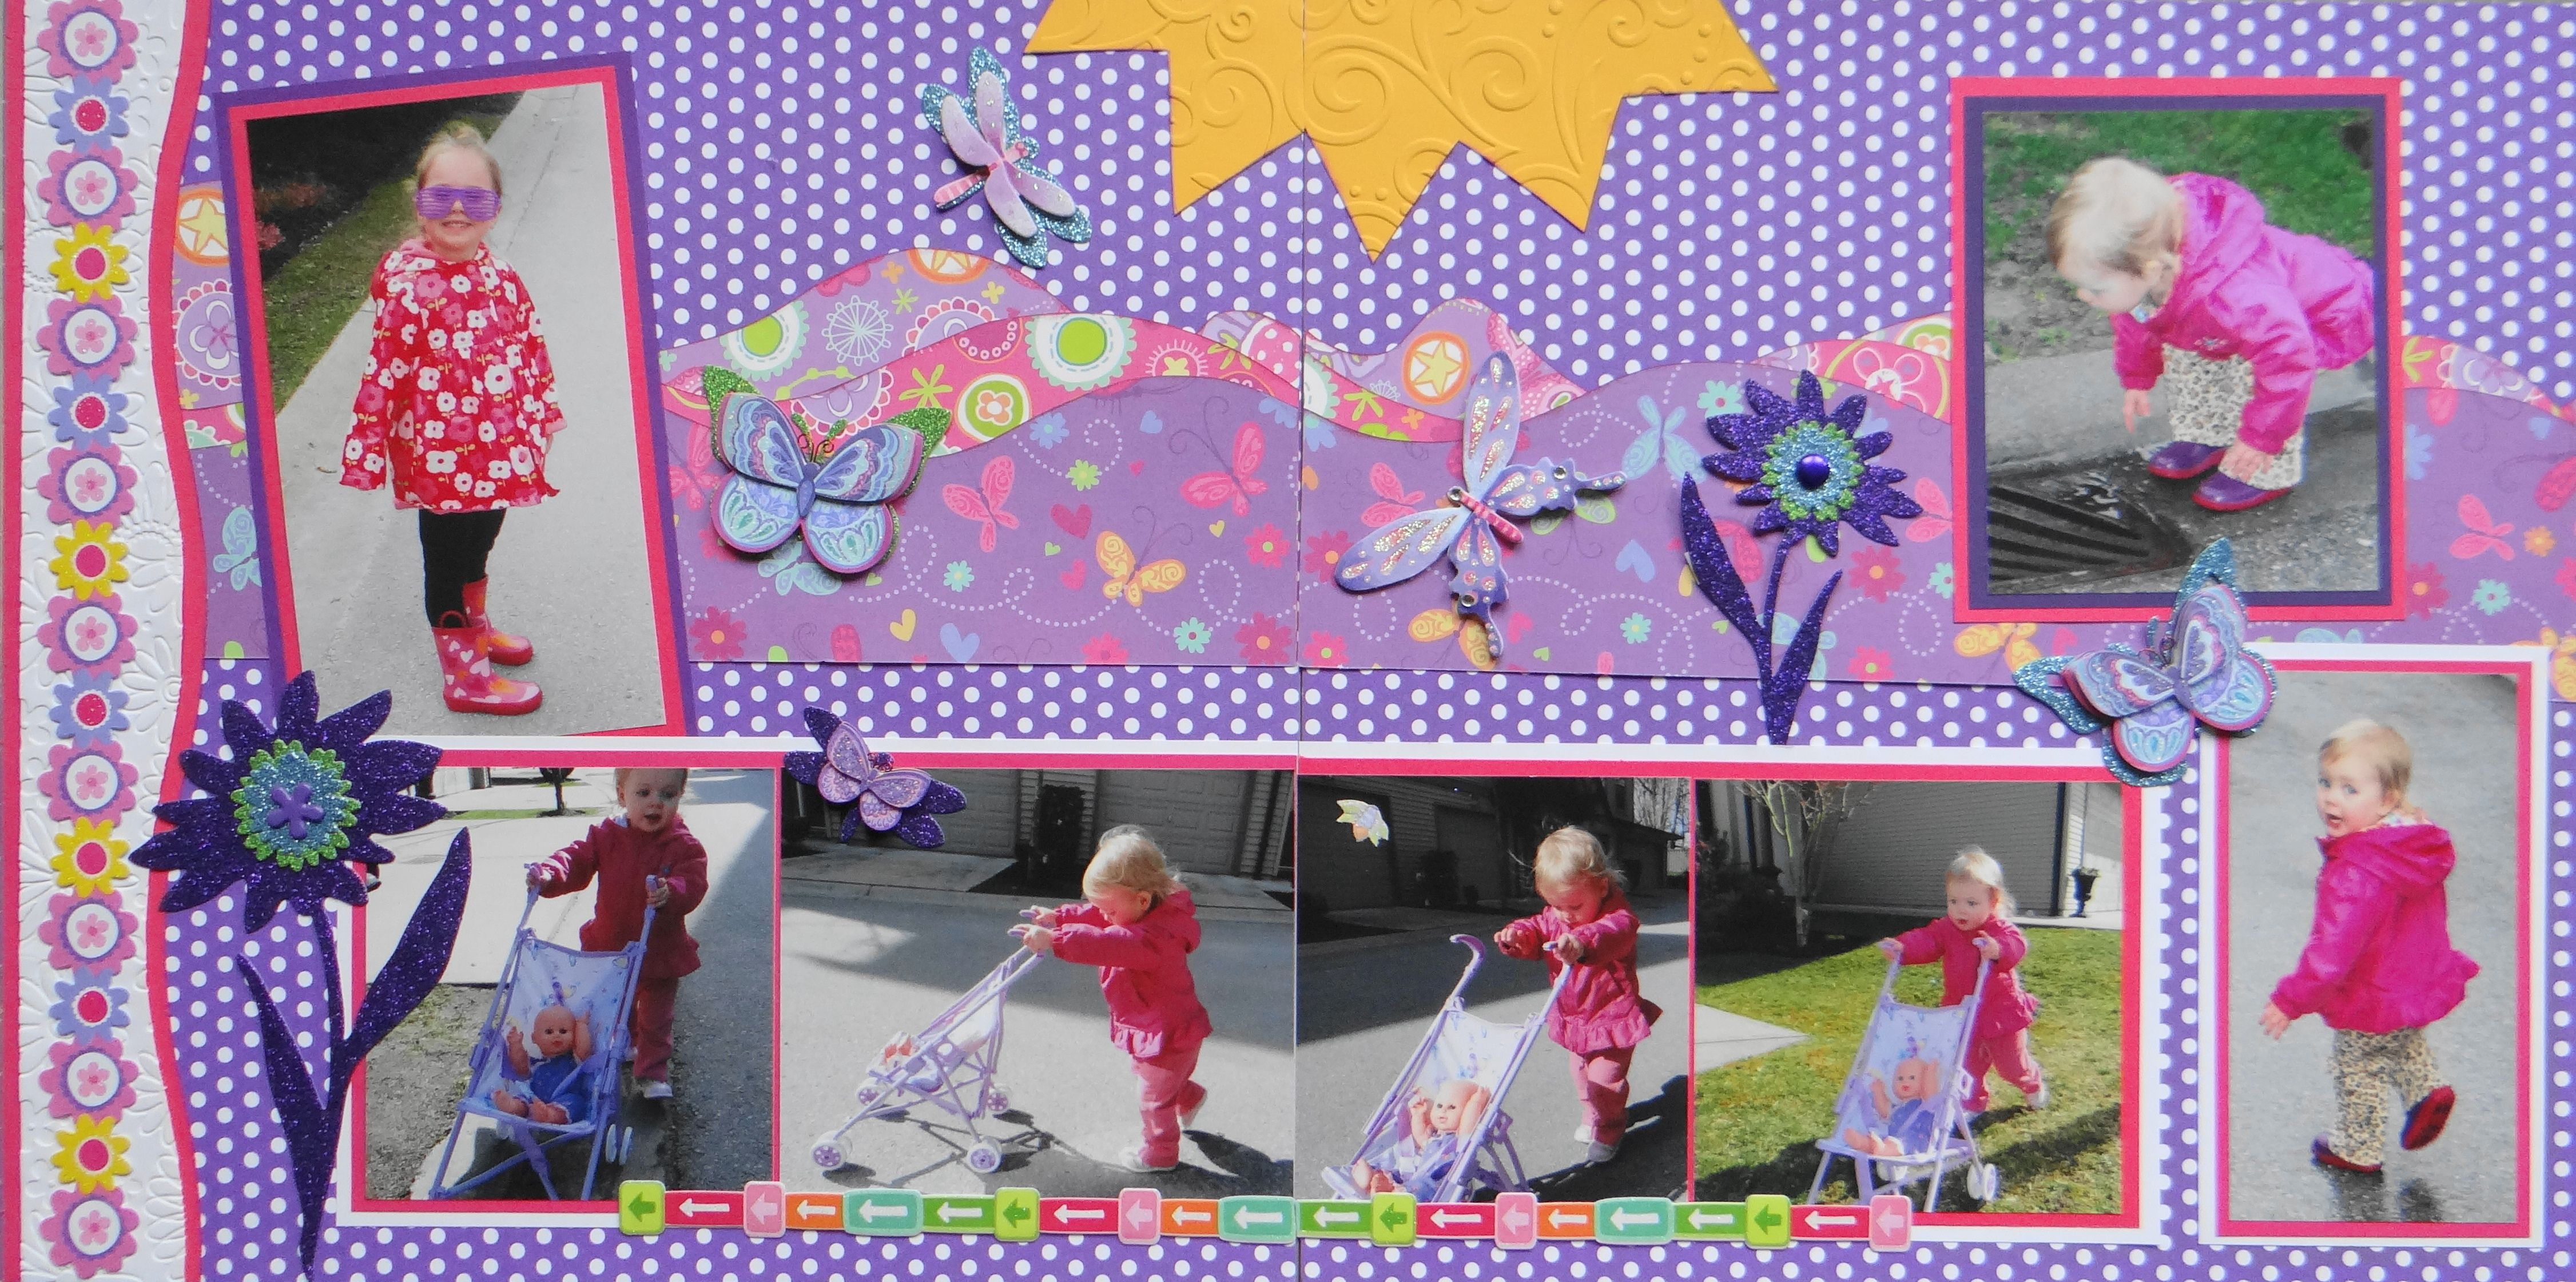 Scrapbook ideas with flowers - Scrapbook Page Stroller Girl 2 Page Girl Layout With Flowers And Butterflies From Everyday